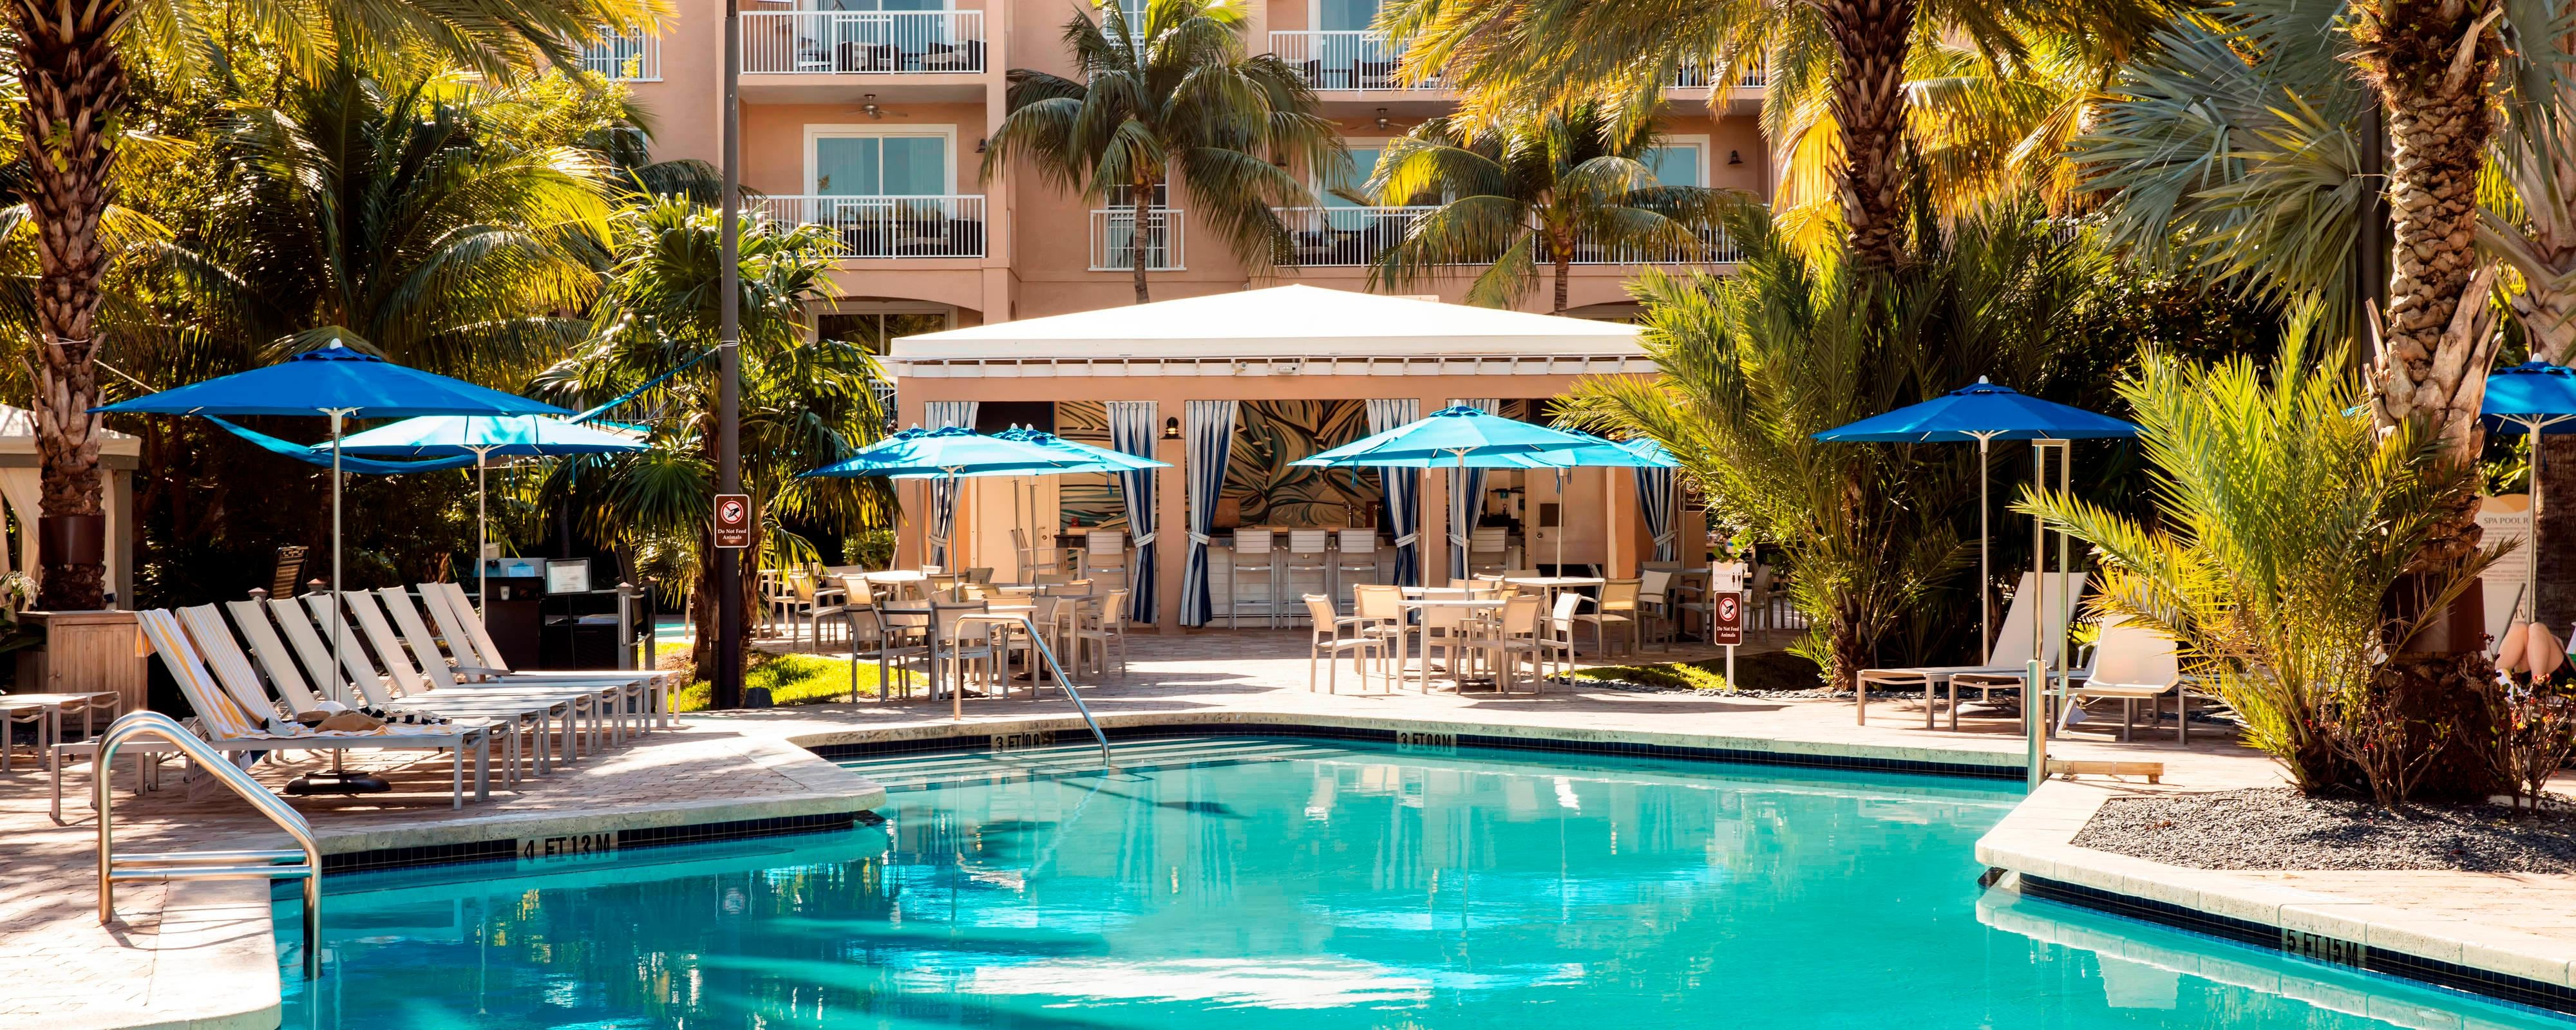 Heron House Hotels  Historic Old Town Key West